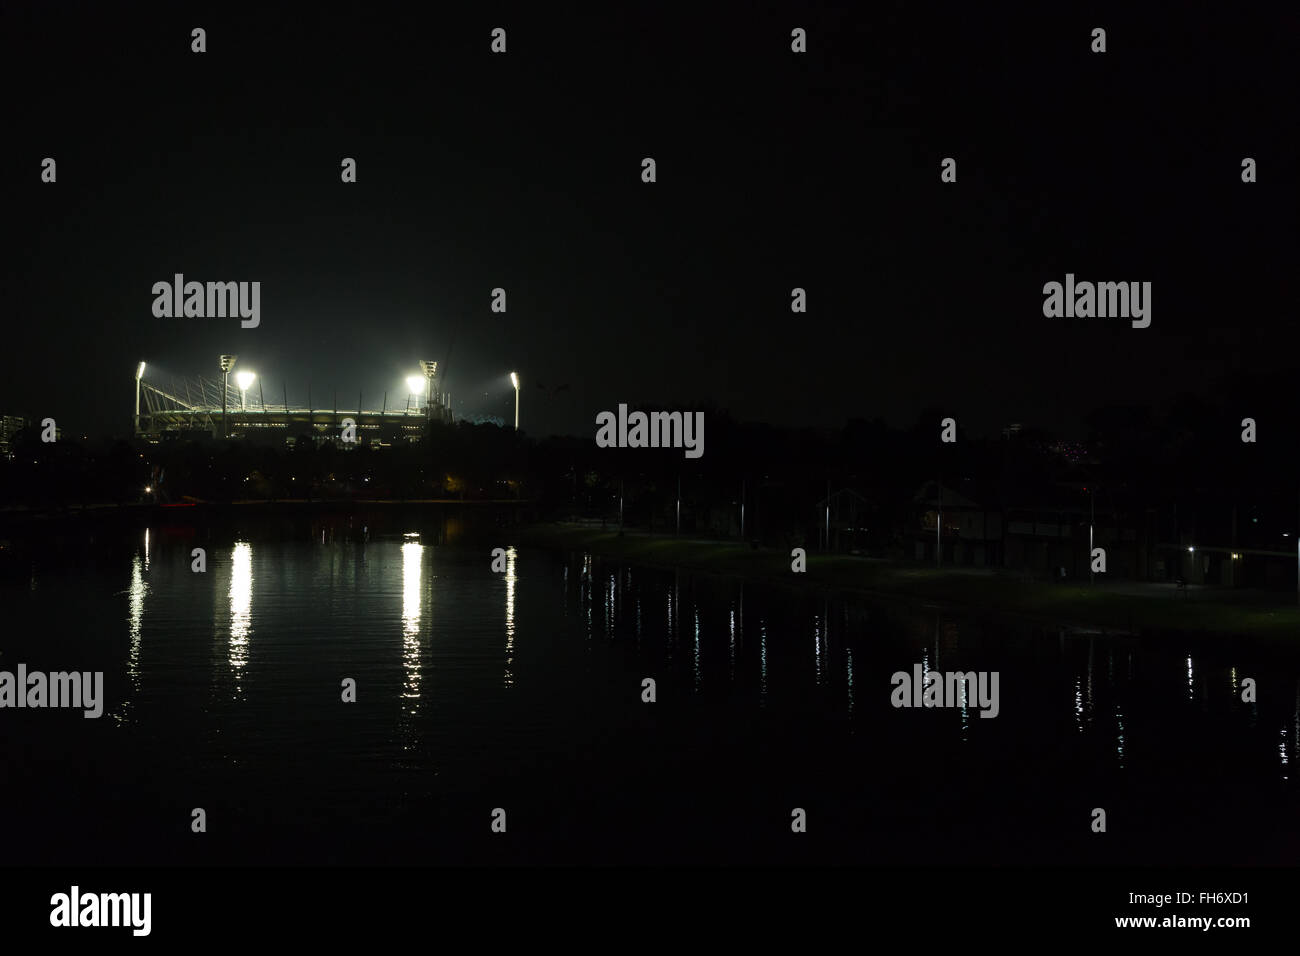 Melbourne, Australia - April 24, 2015: Melbourne Cricket Ground by night illuminated for a match. - Stock Image